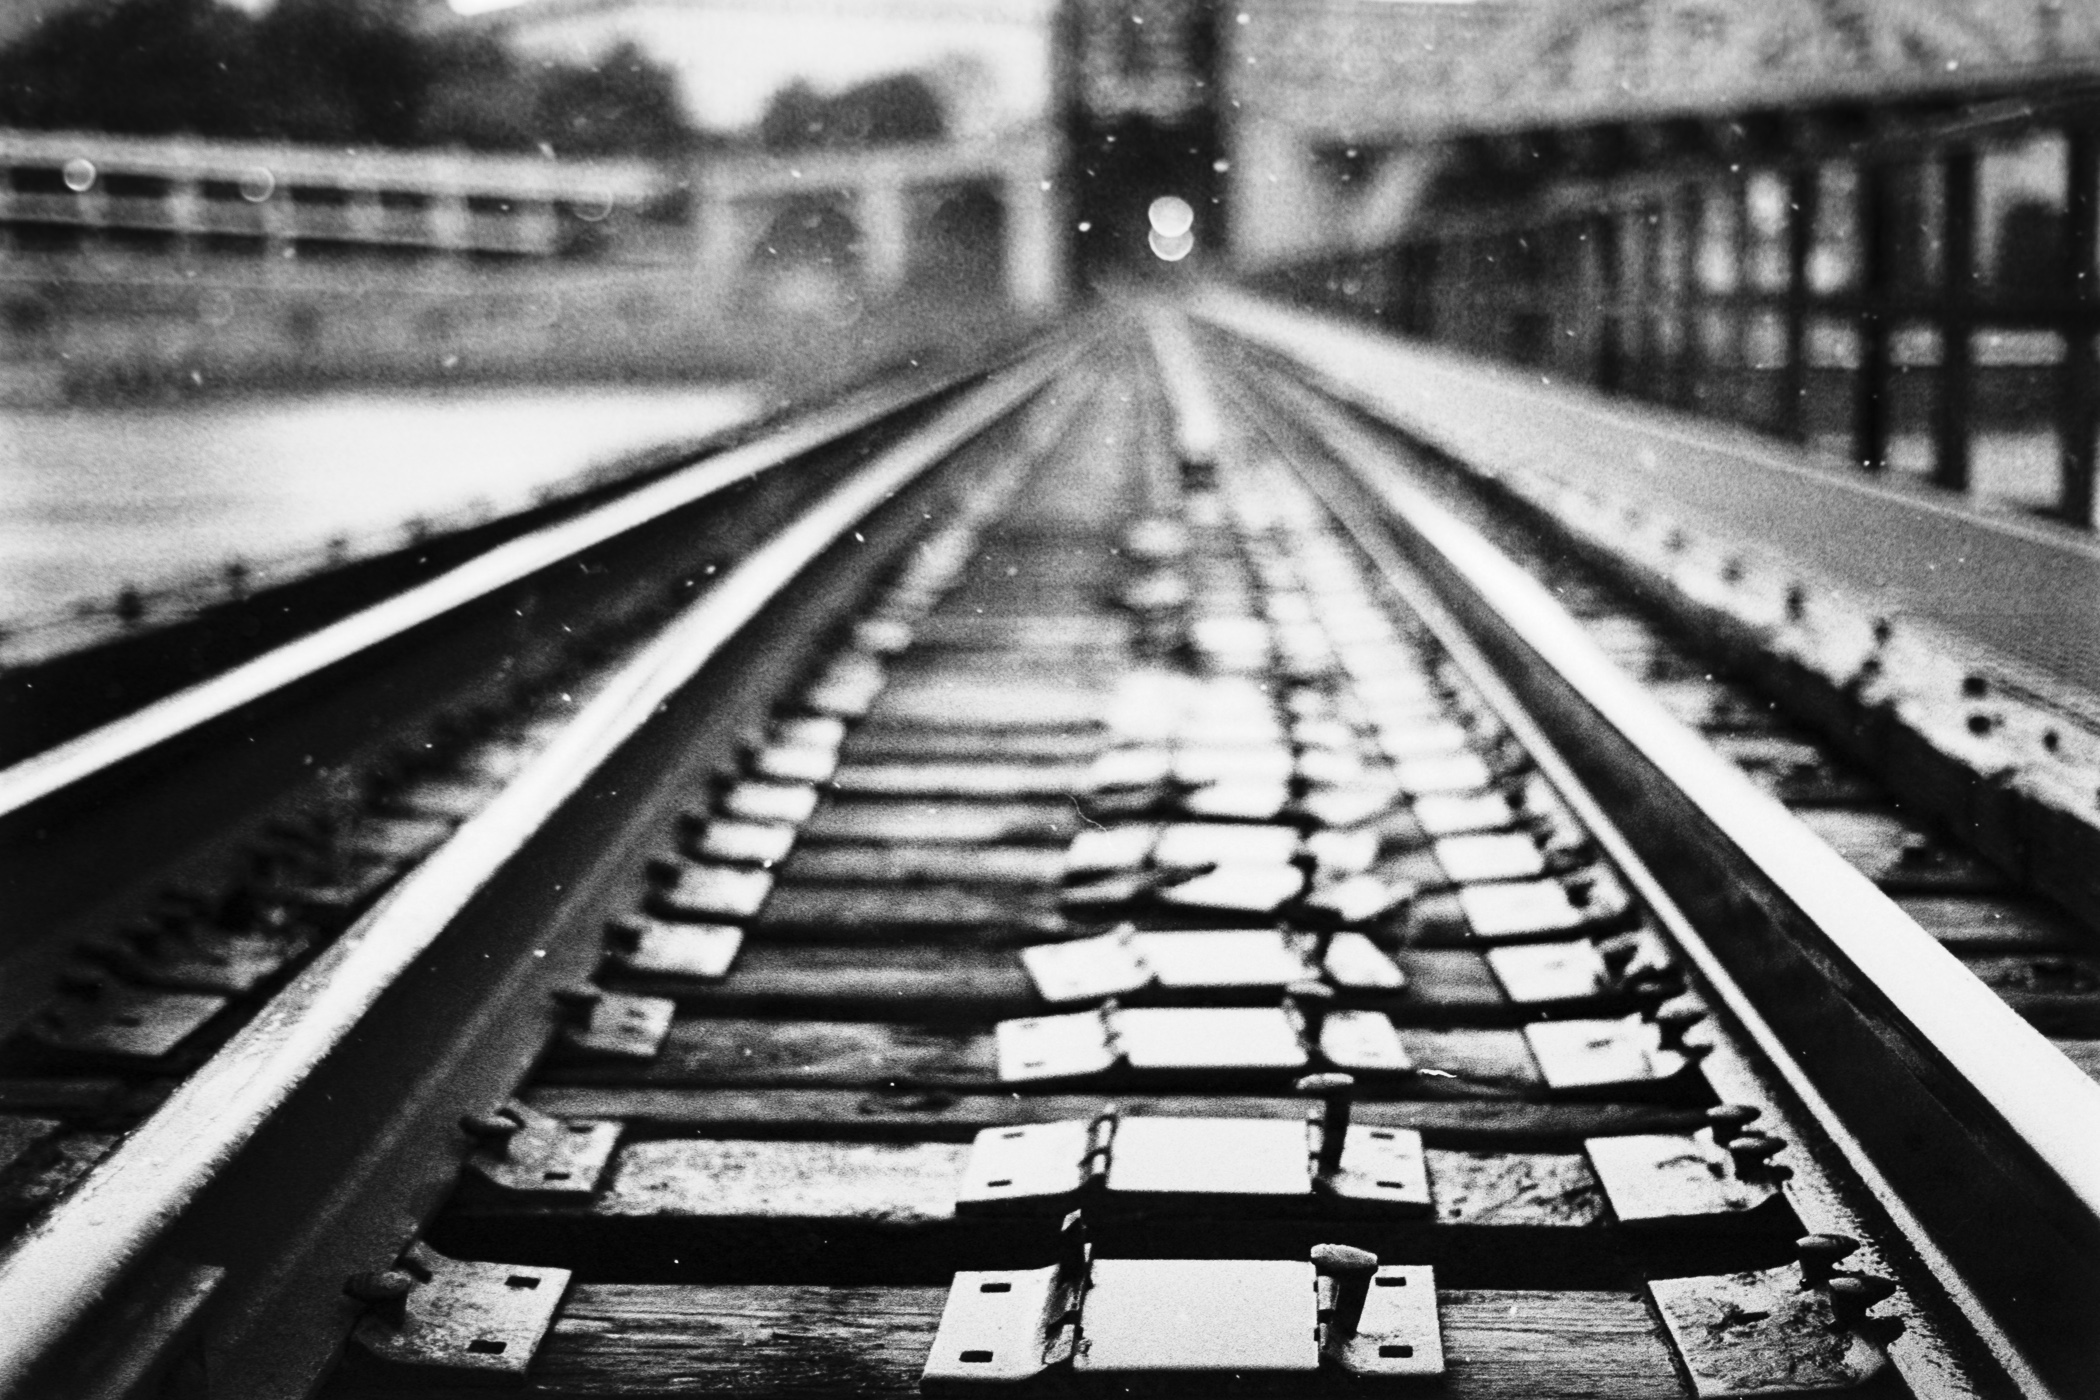 Train tracks in the rain, Saint Paul, Kodak TriX 400 B&W film, Nikon FE 35mm